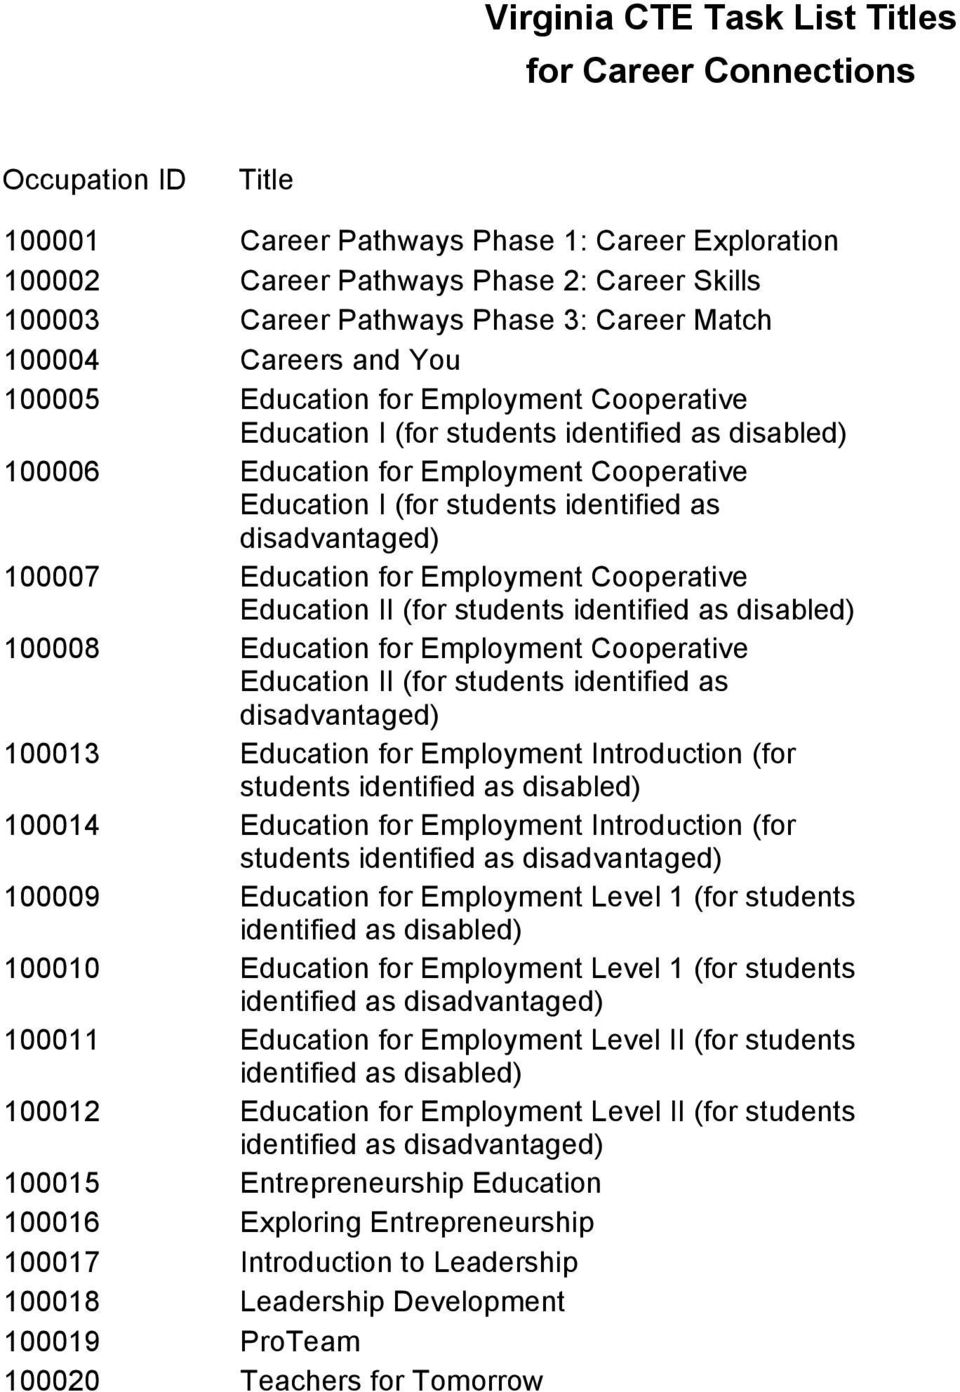 disadvantaged) 100007 Education for Employment Cooperative Education II (for students identified as disabled) 100008 Education for Employment Cooperative Education II (for students identified as